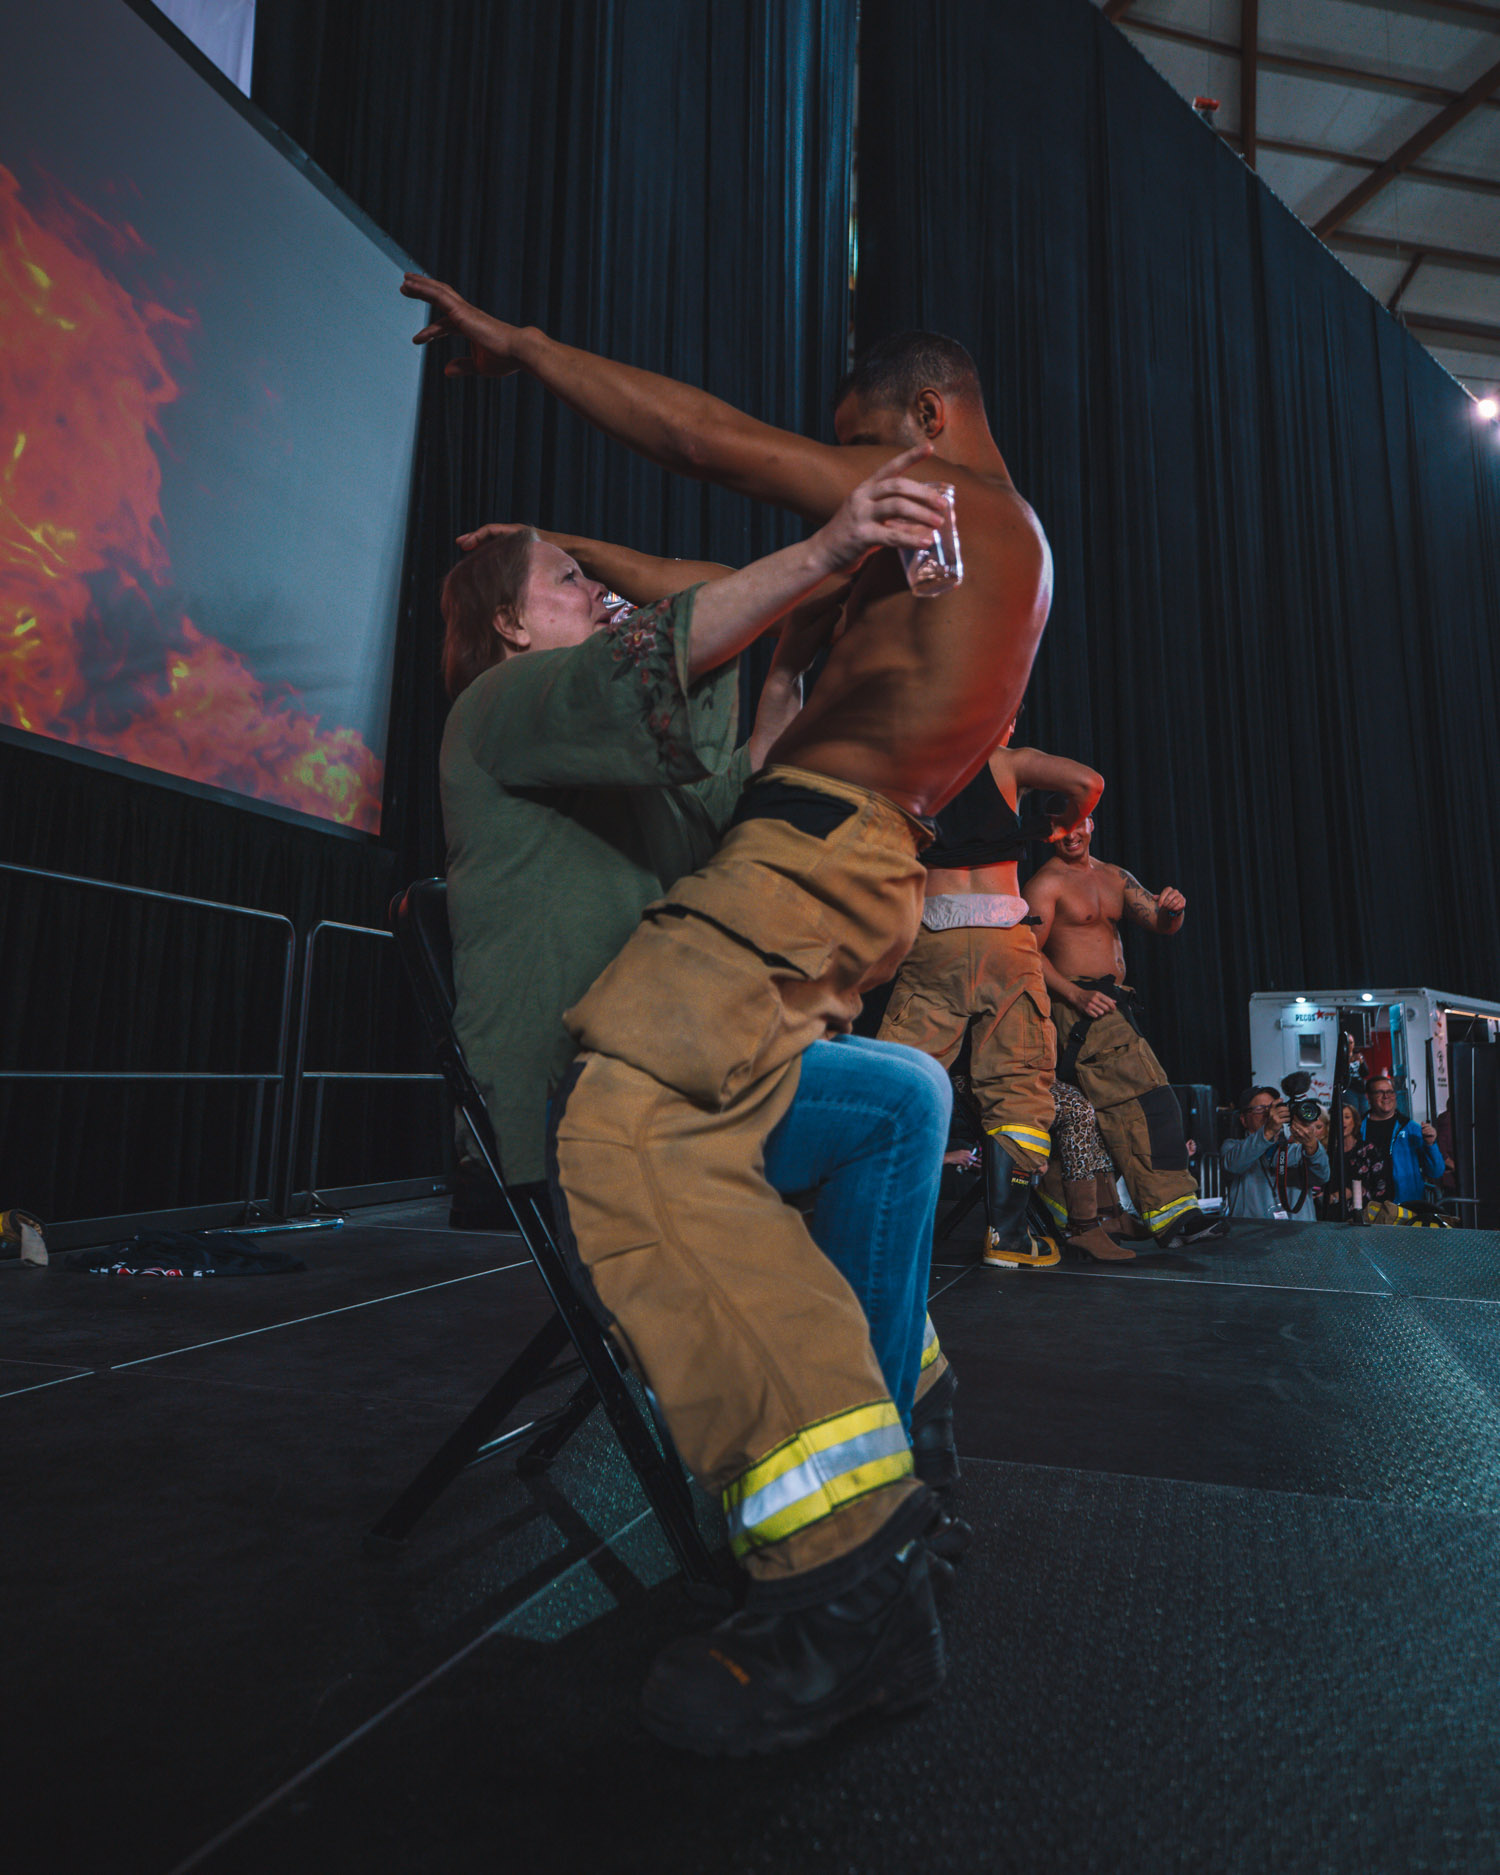 Is it just us, or is it getting HOT in here? It's definitely not just us, it's the Tacoma Professional Firefighters, Adrienne Bankert of ABC News, Dancing With The Stars camp Alan Bersten, celebrity chefs Danielle Kartes and Shaun O'Neale, magician David Minkin and all the fun and games happening at the So Northwest Women's Show presented by BECU at the Tacoma Dome this weekend. Hundreds crowded the Dome for shopping, samples, entertainment and celebrities alike! Missed Day 1?{ } (Image: Daniel Macadangdang / Seattle Refined)